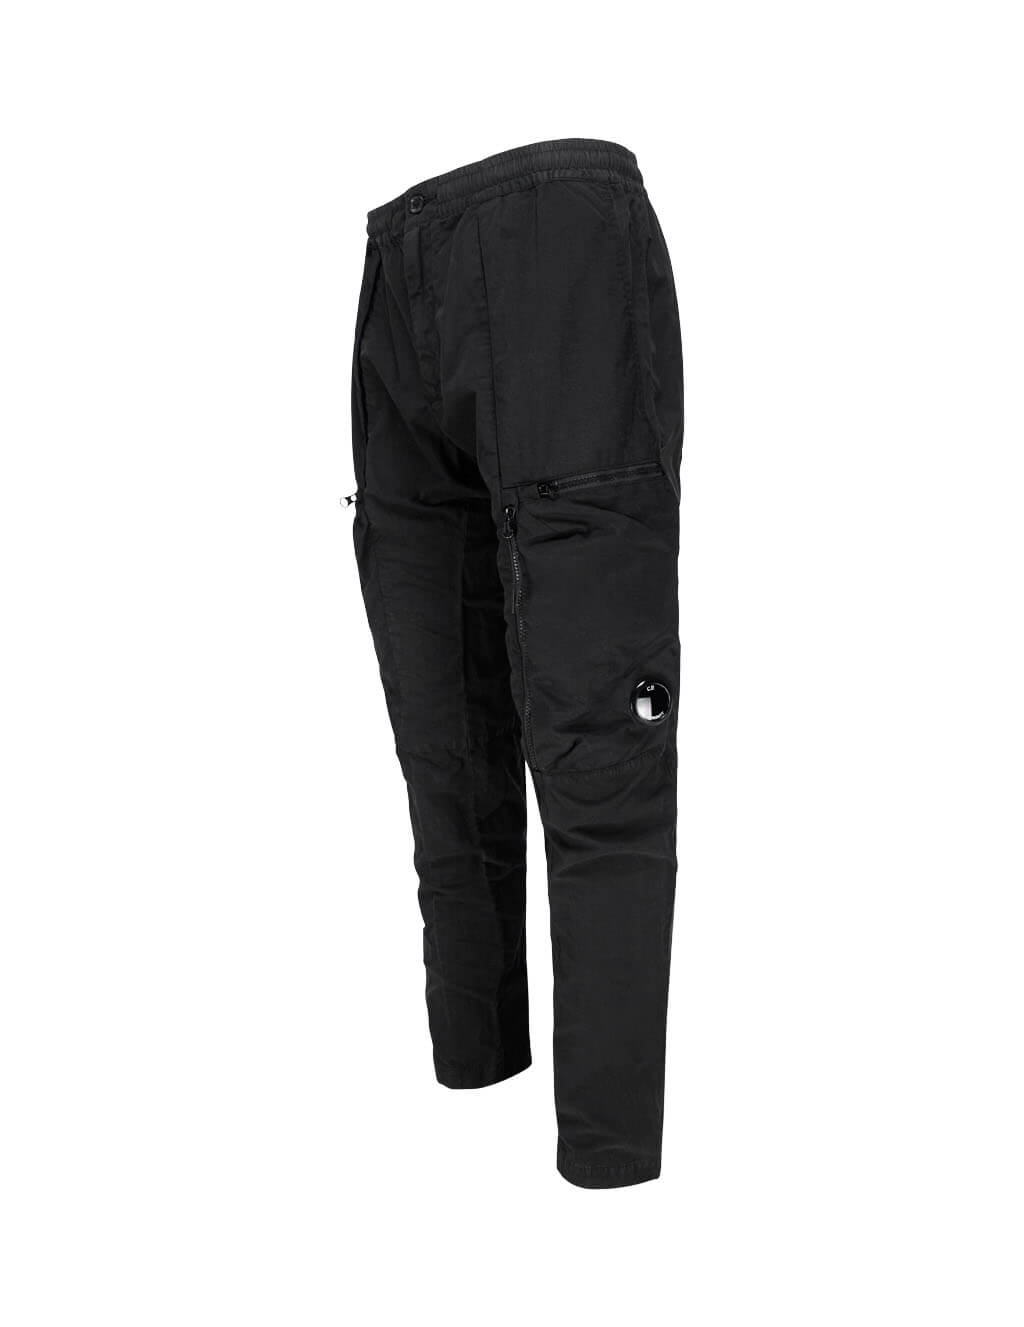 C.P. Company Men's Giulio Fashion Black Cargo Pants MPA140A005532G999